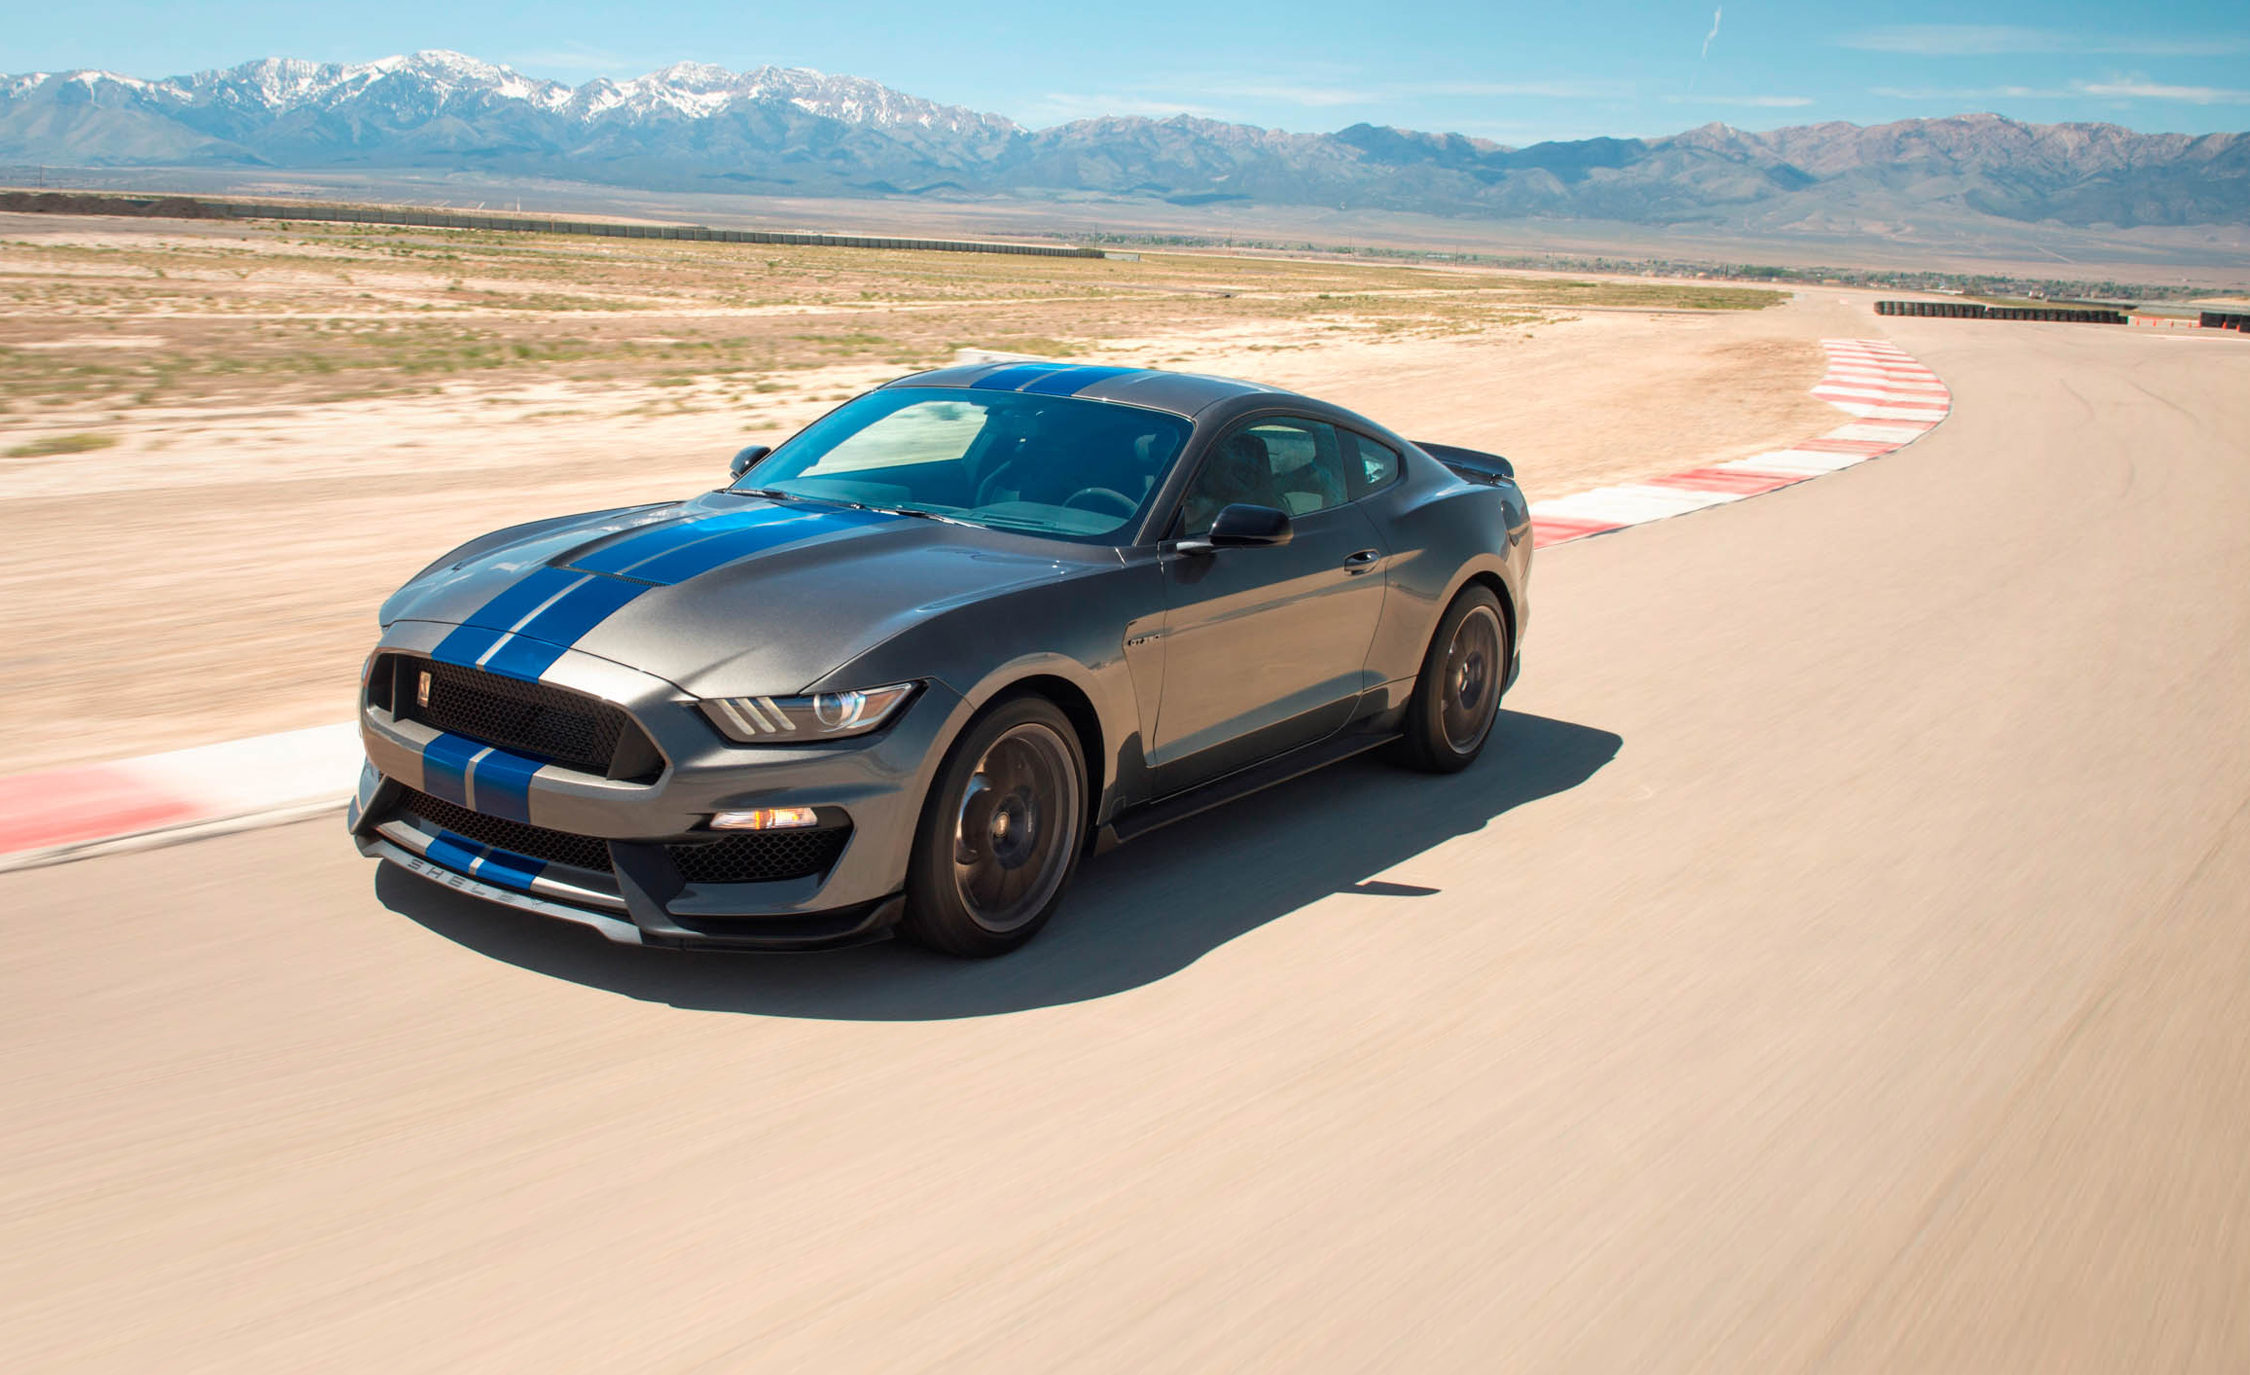 Ford, iconic, Mustang, reach, milestone, 10 millionth, vehicle, Newsmobile, Mobile News, India, Auto, Car